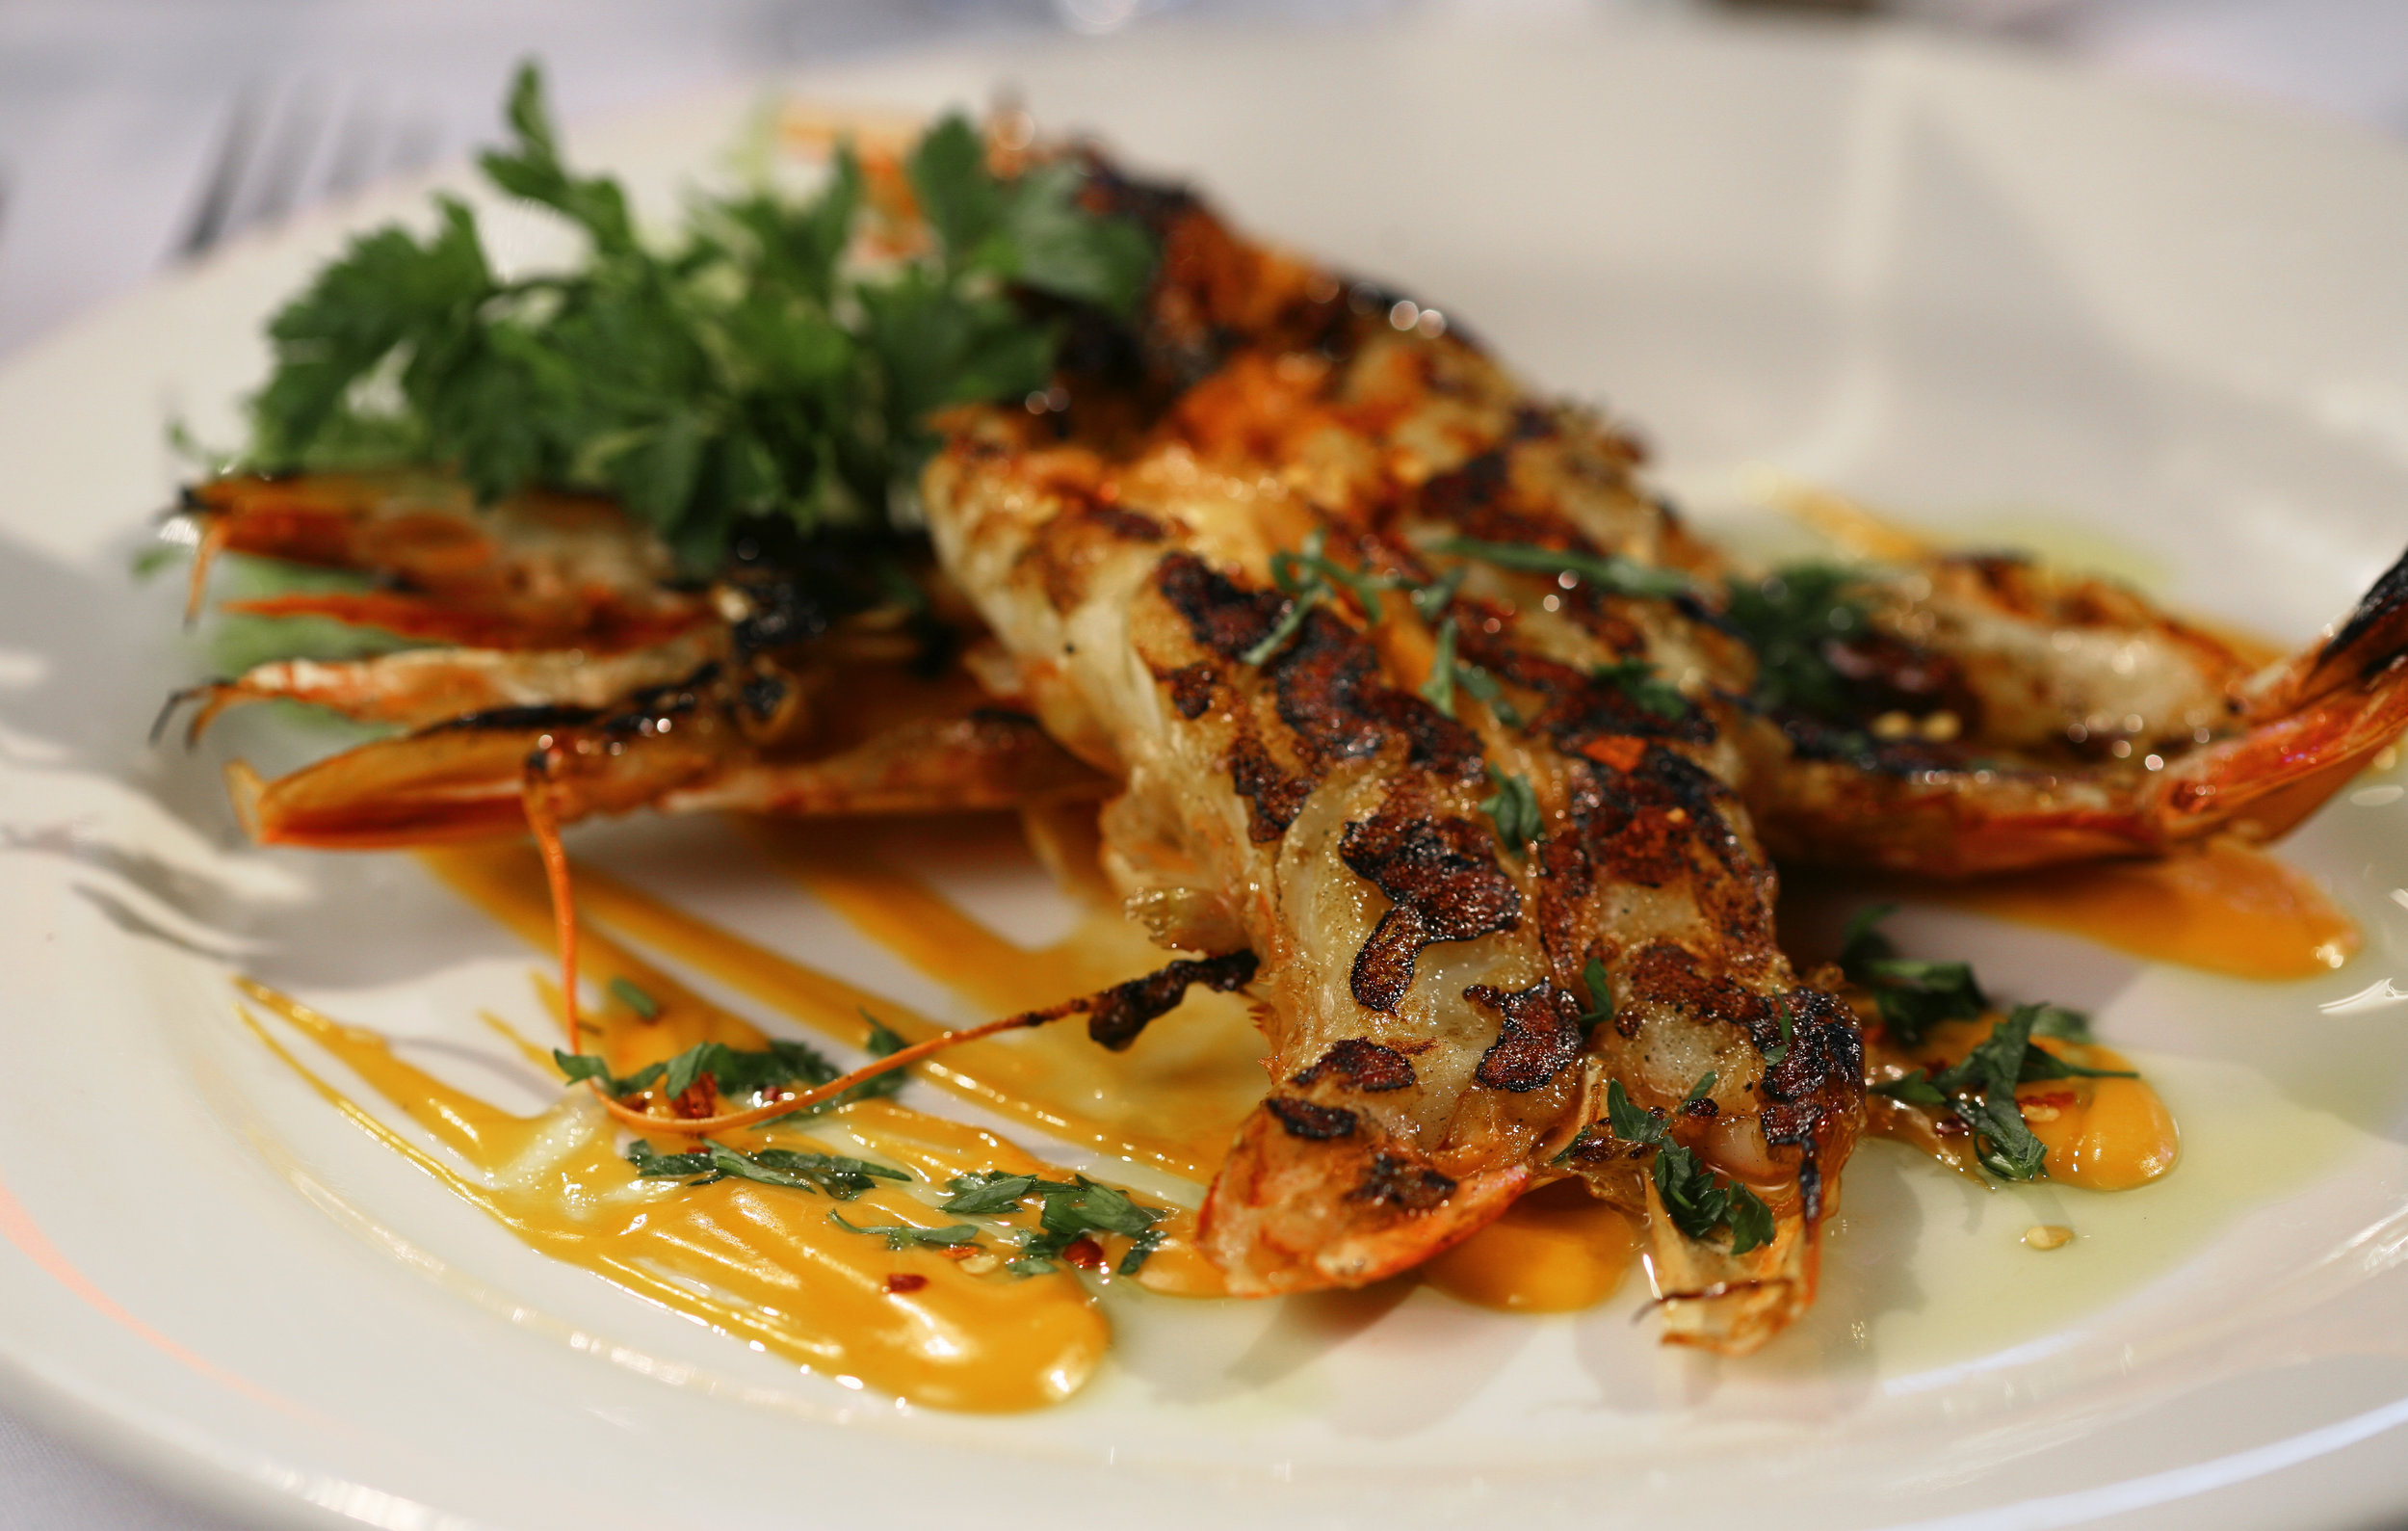 Char-grilled shellfish over a romesco, with olive oil.